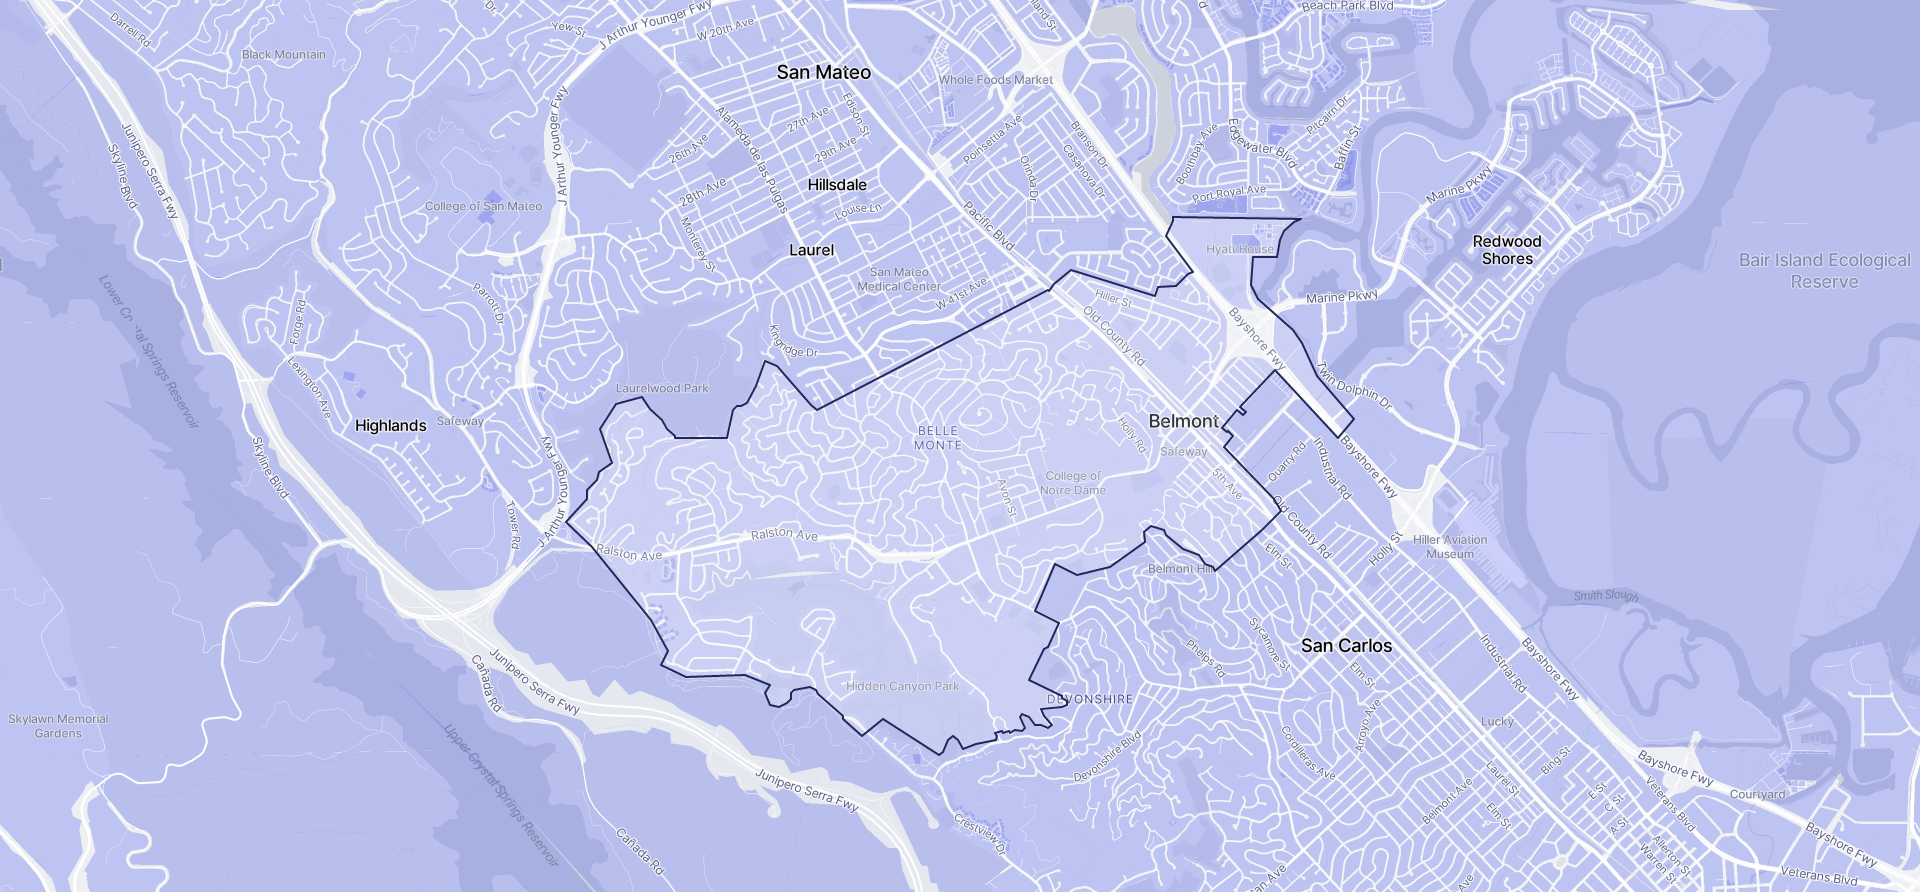 Image of Belmont boundaries on a map.